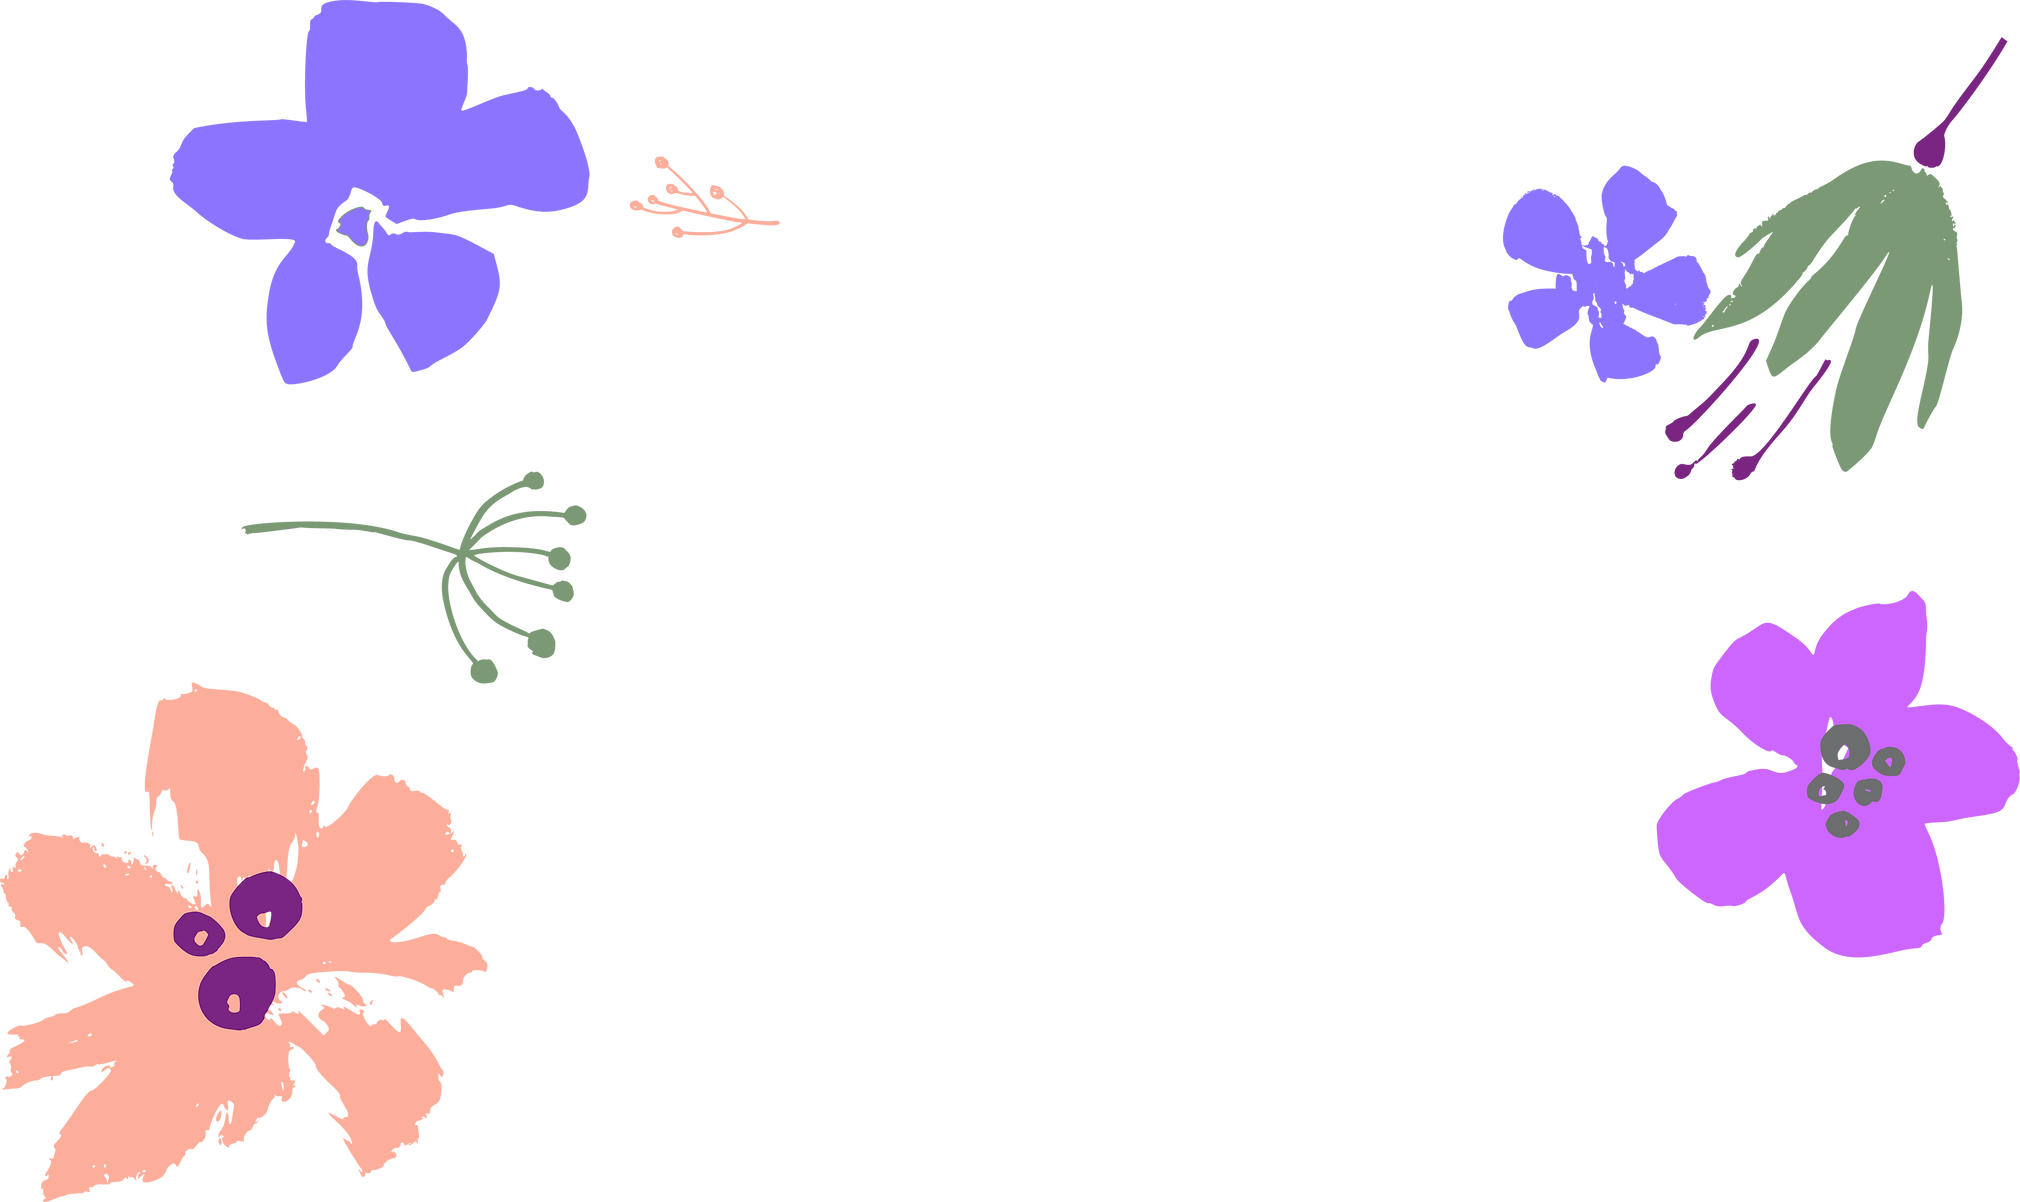 LadiesInTraining_ART_homepage Flowers.pn